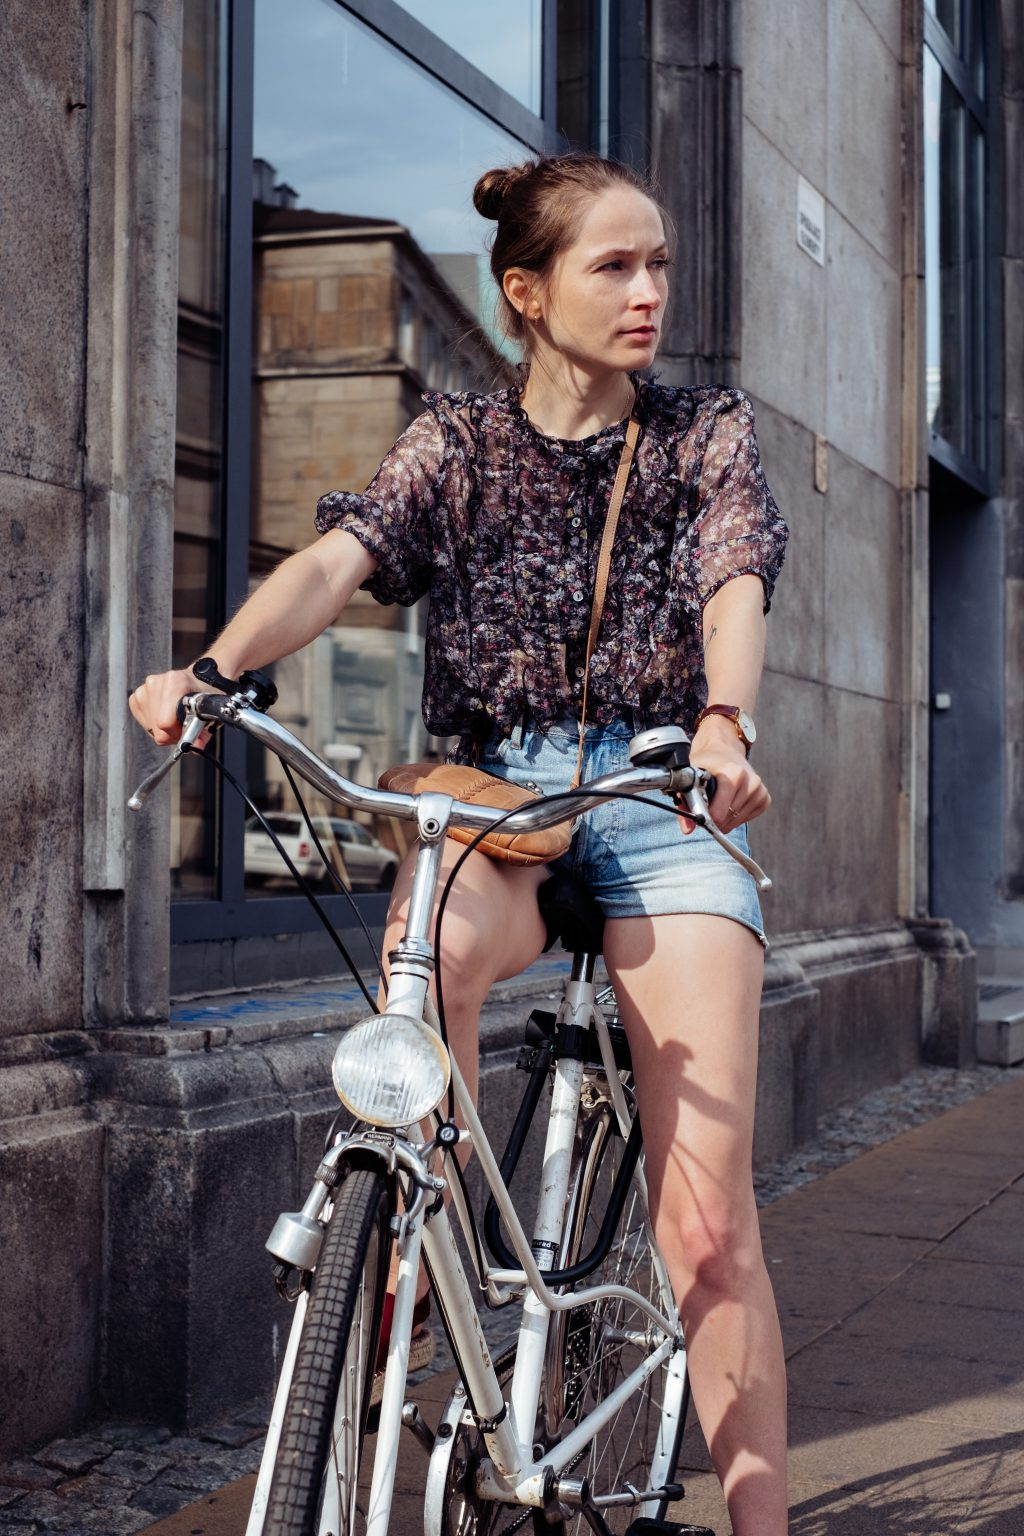 Female on a bicycle in the city 3 - free stock photo